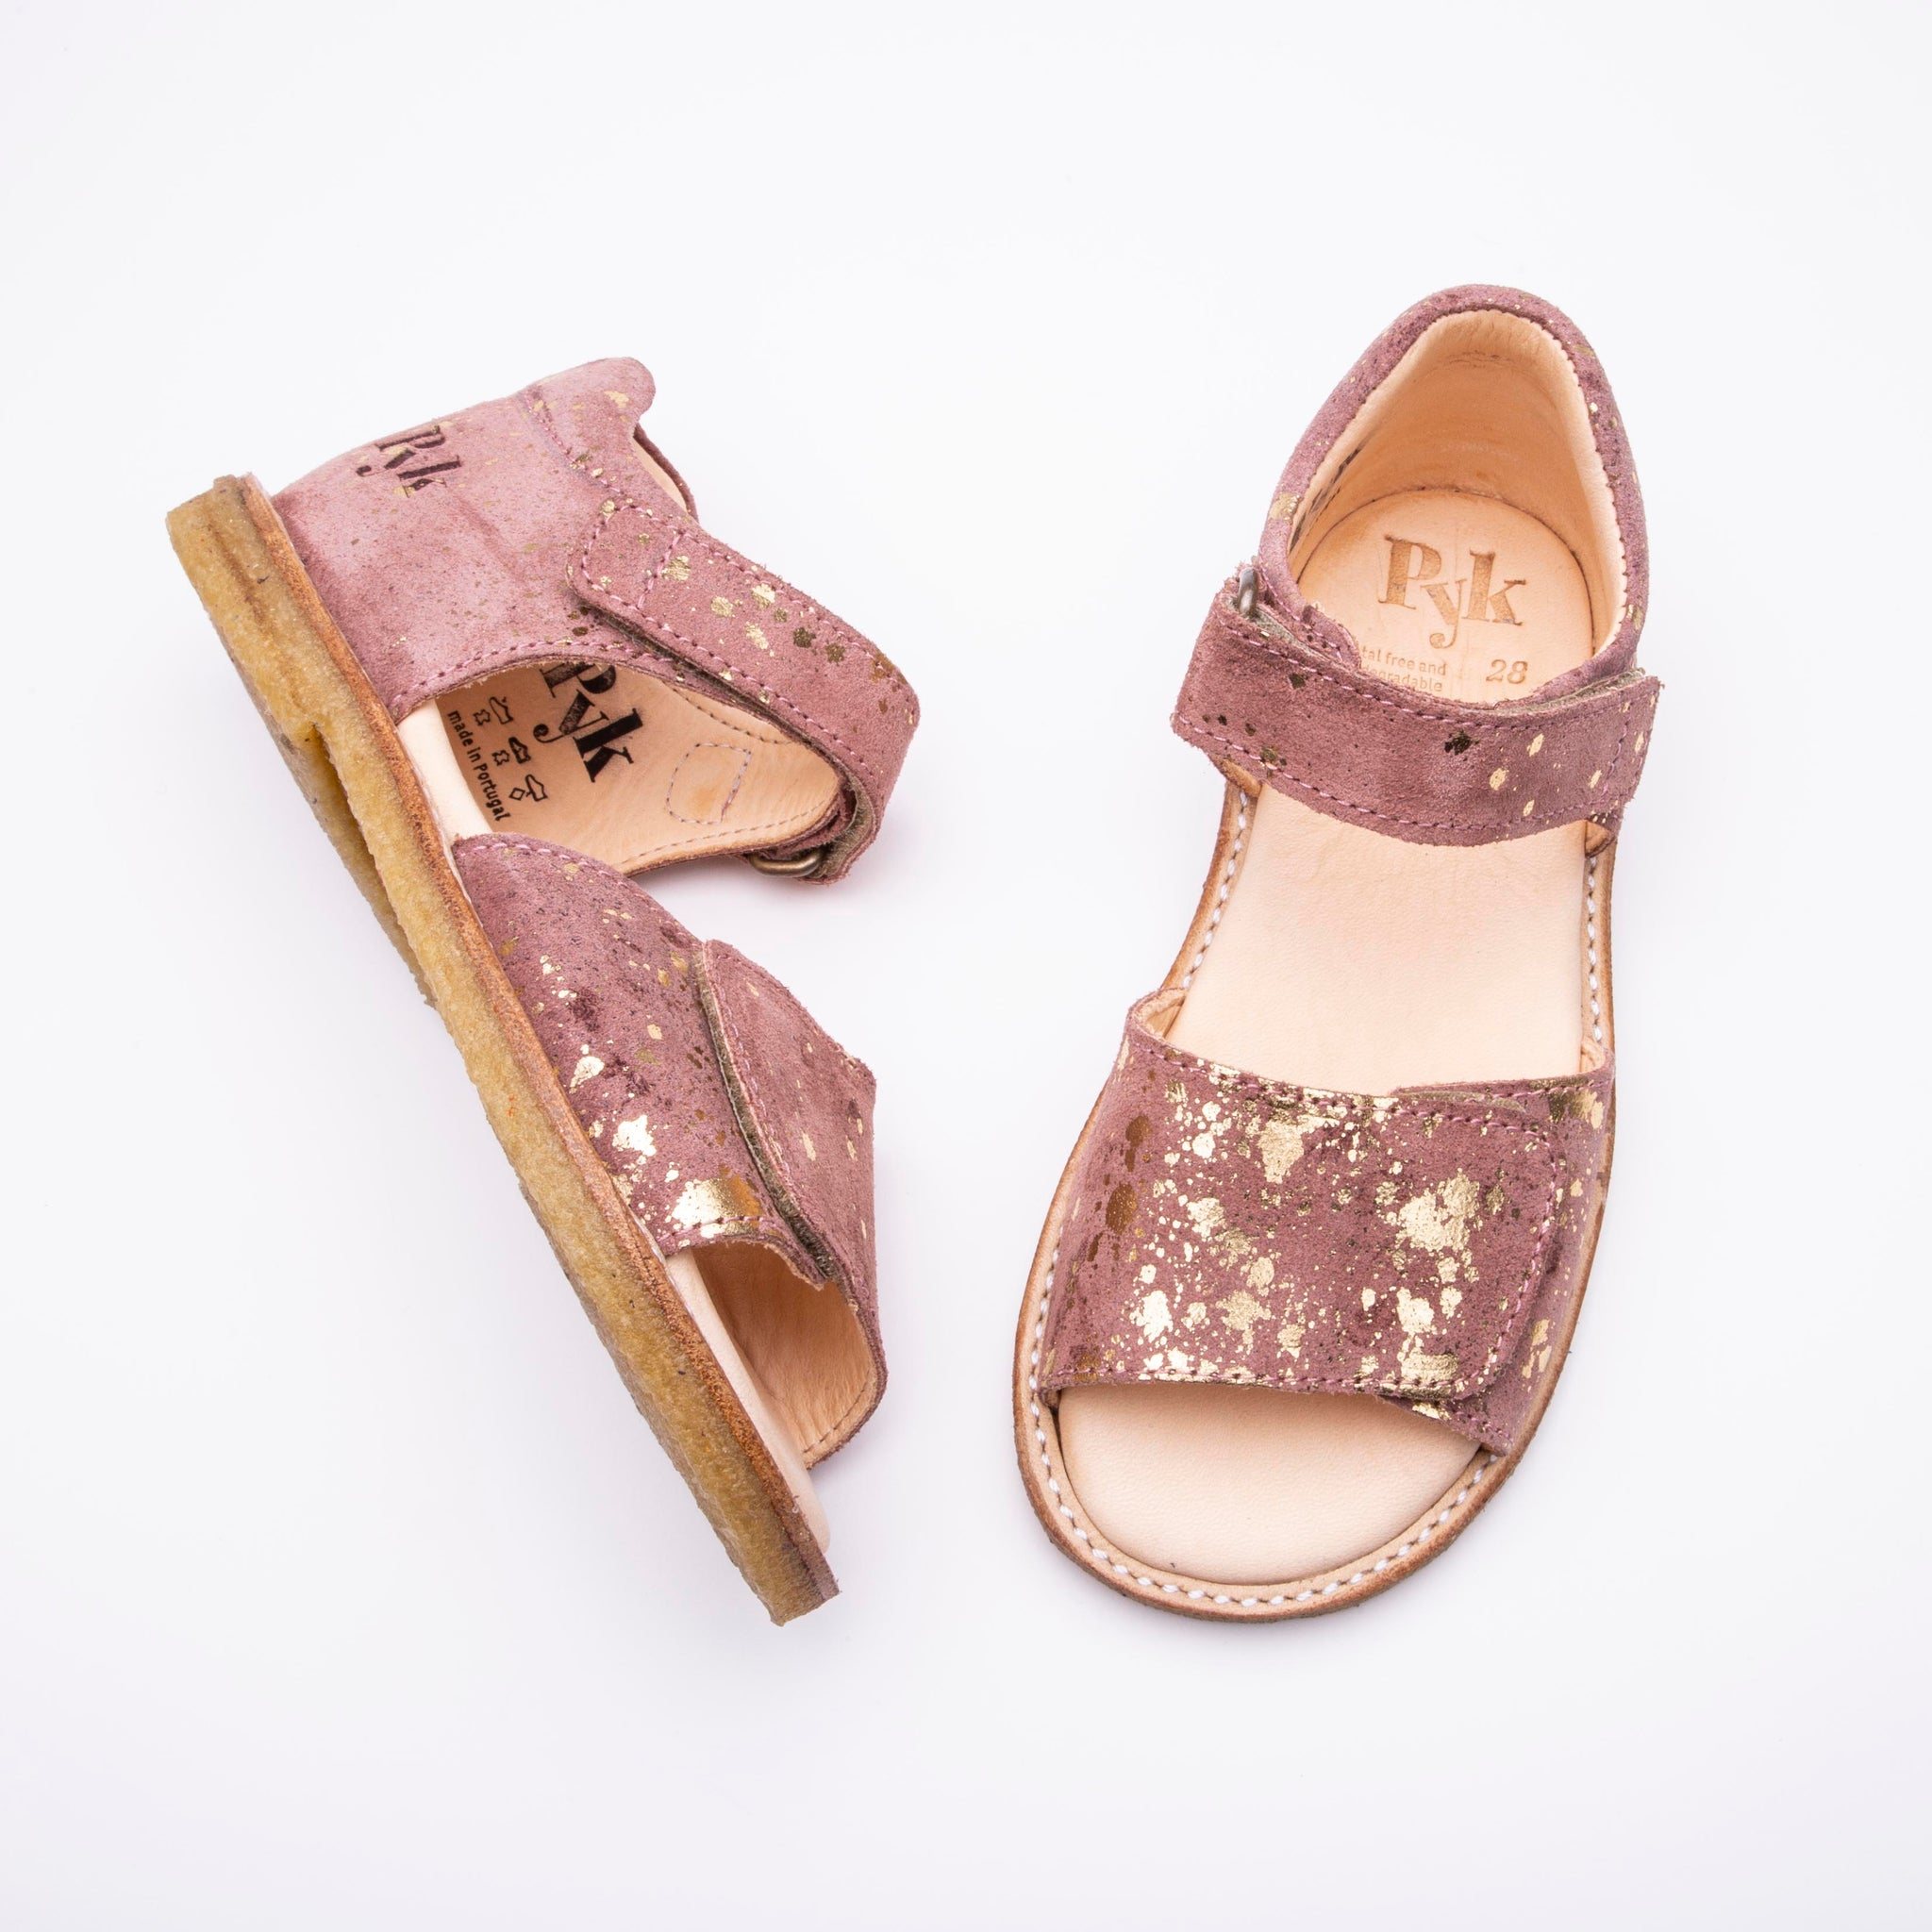 Line Rose Splash sandals for children Pyk Copenhagen